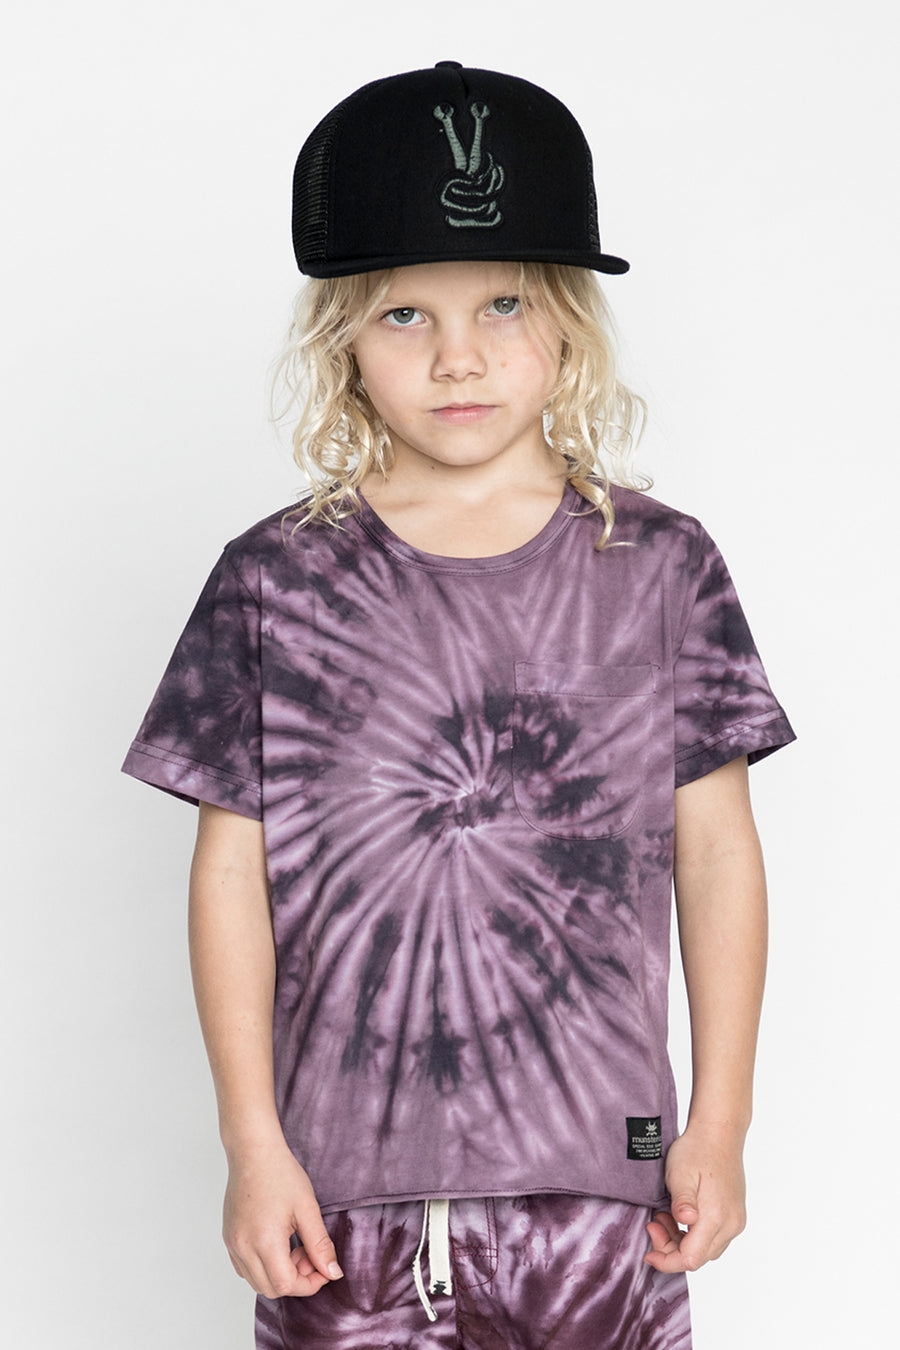 Munster Kids Whirlpool Boys T-Shirt - Purple